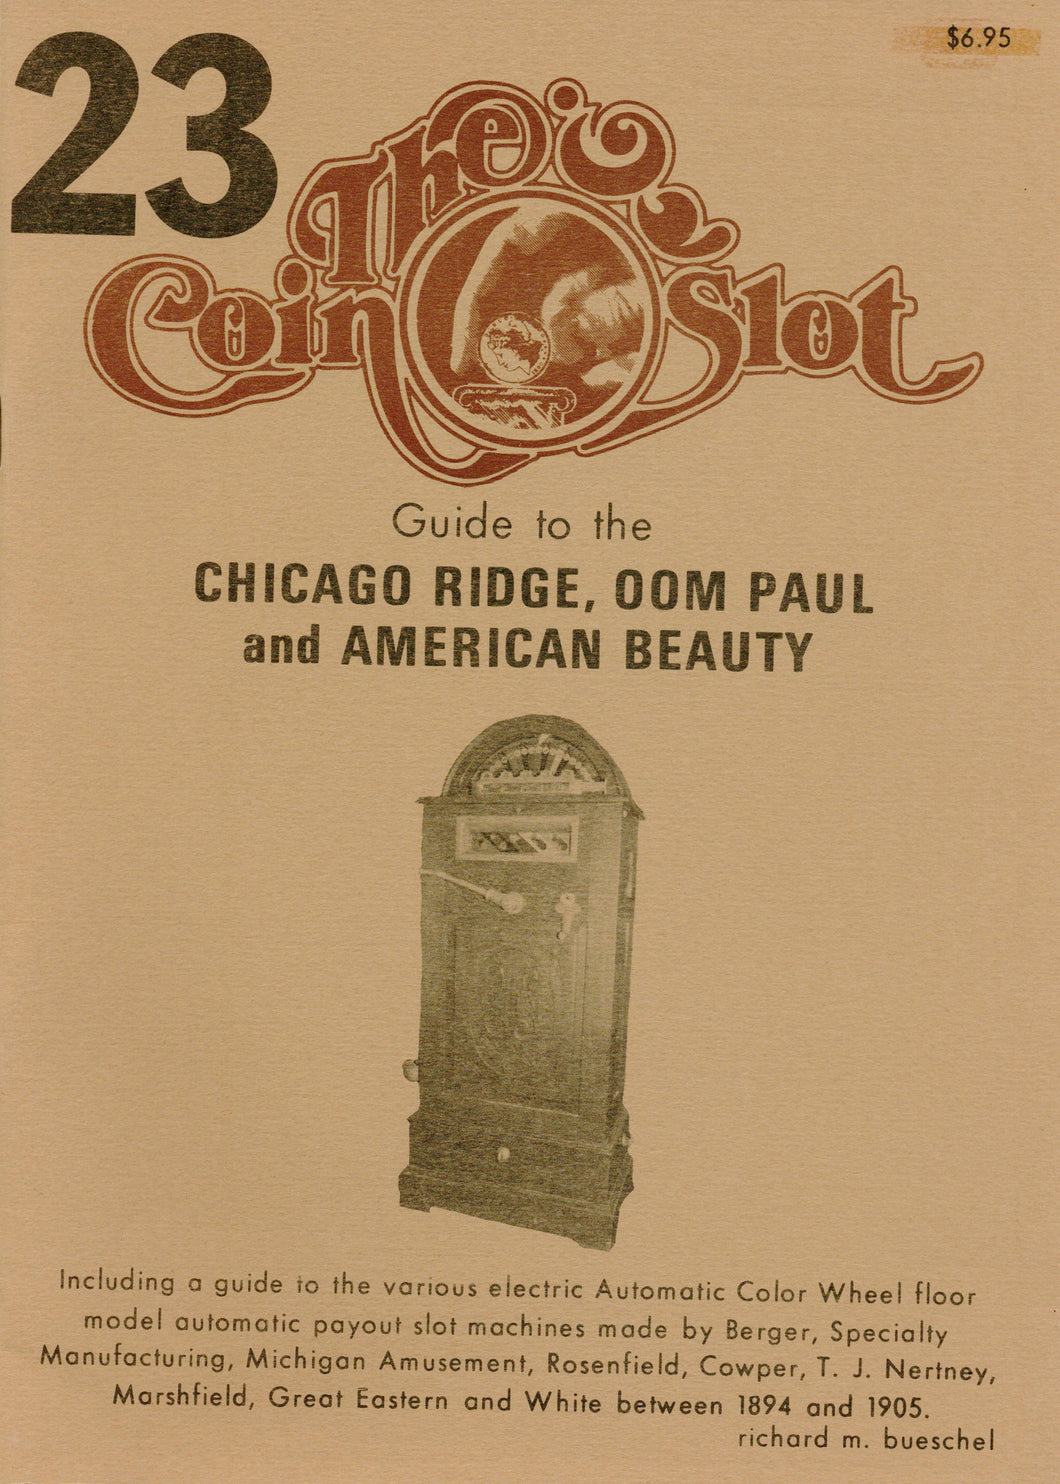 Coin Slot #23. Guide to the Chicago Ridge, Oom Paul and American Beauty